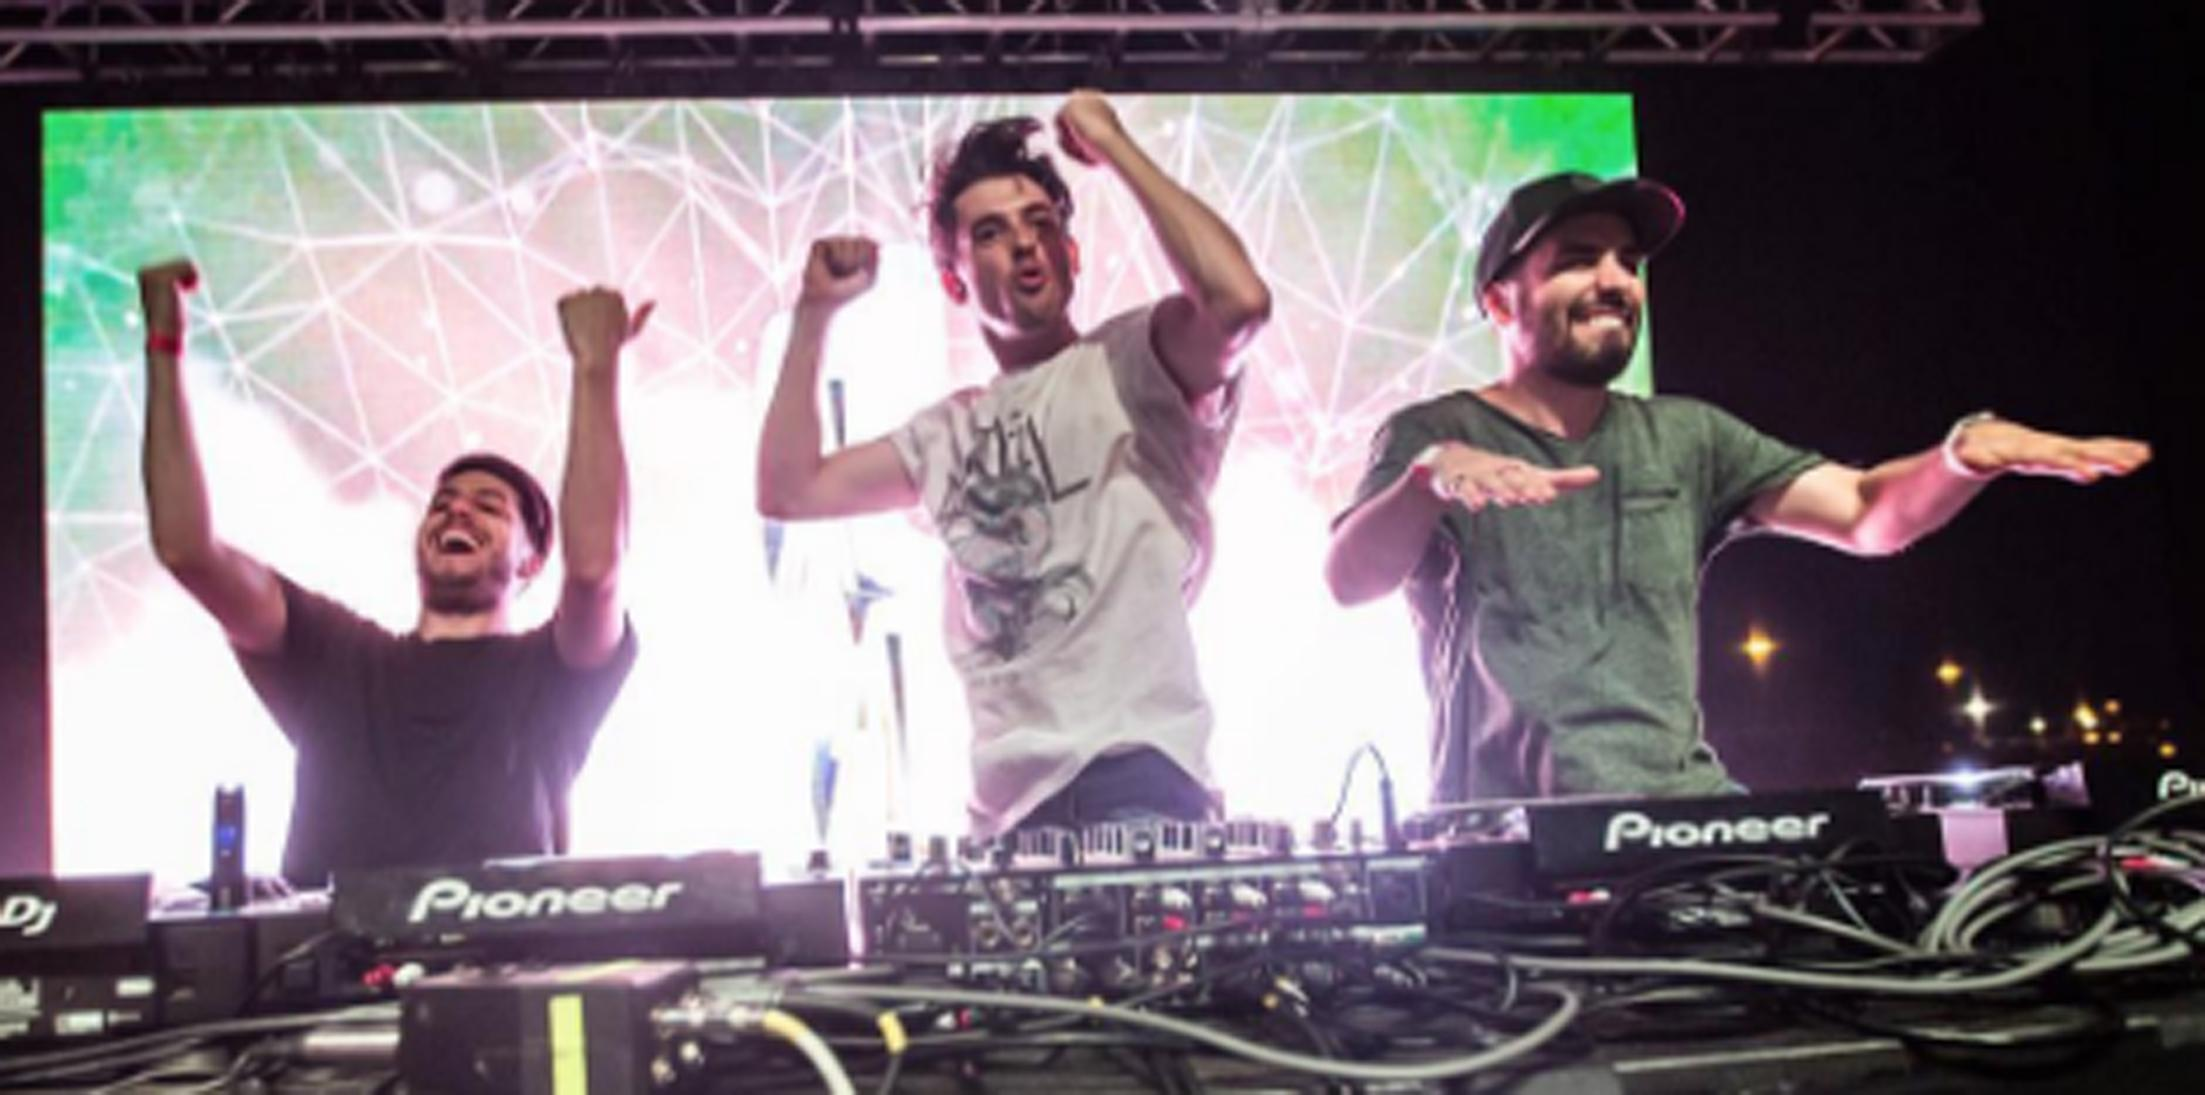 Cash cash edm group tell all rise to fame new music hero